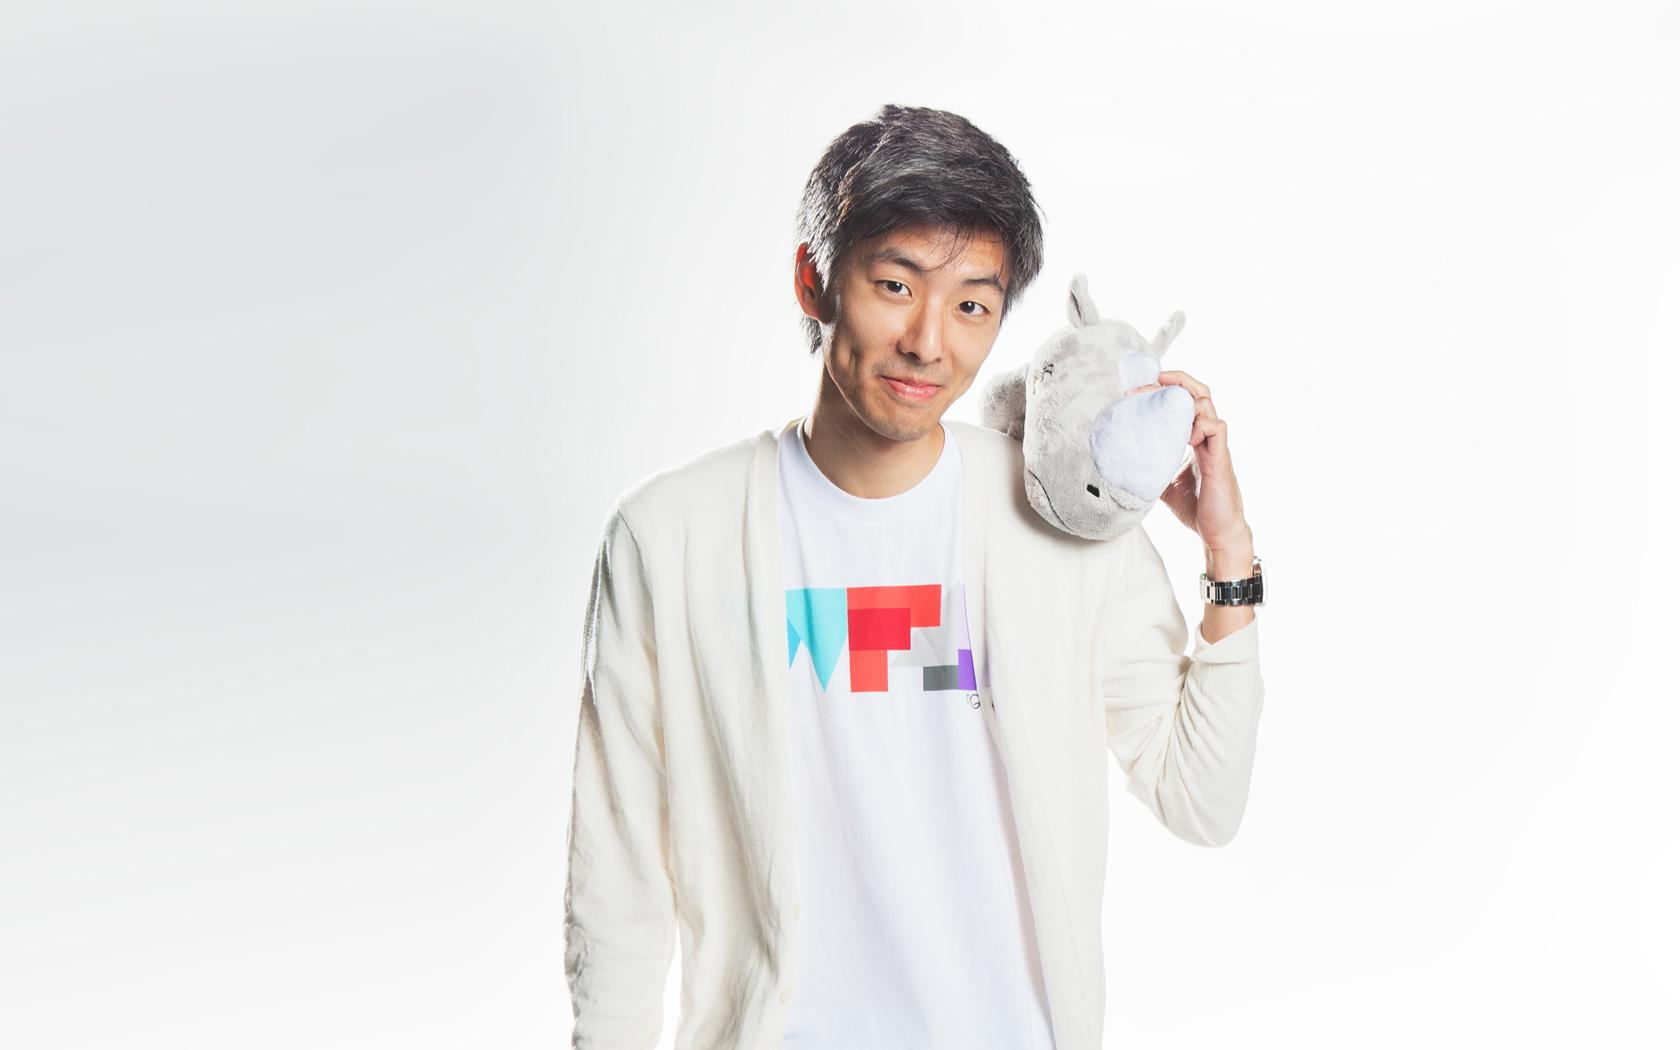 ted fu height